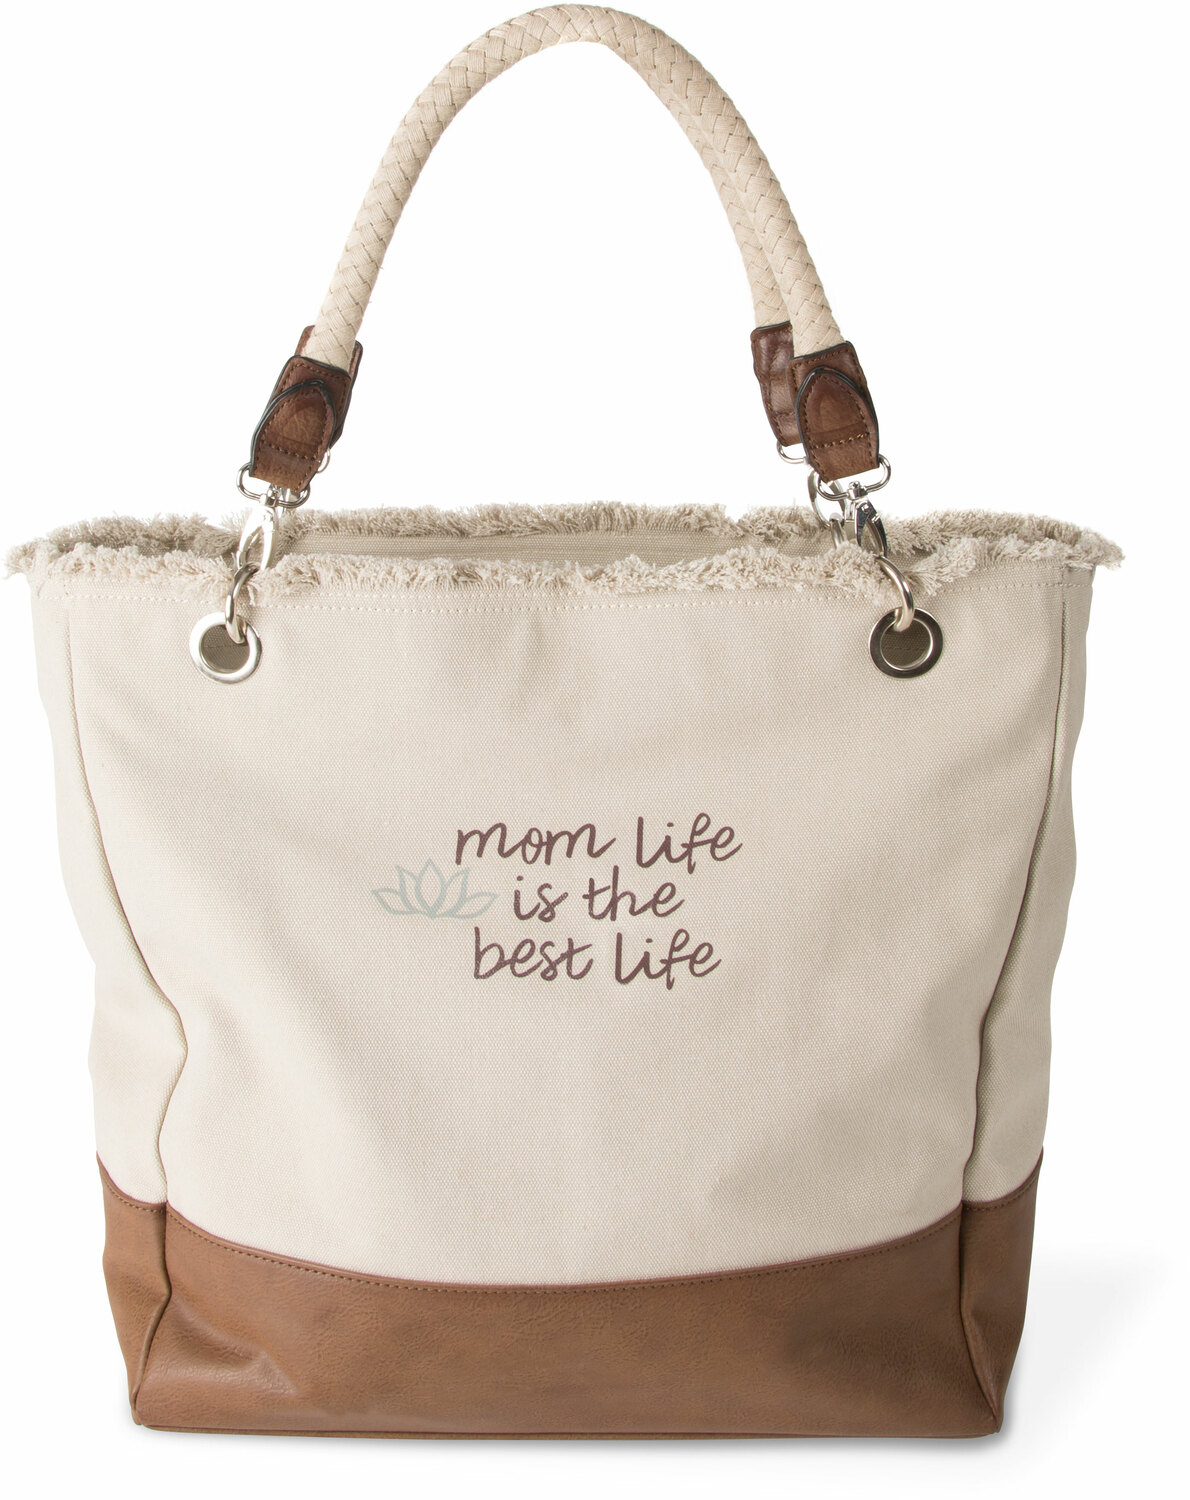 "Best Life by Mom Life - Best Life - 18"" x 15"" x 6.75"" Large Canvas Tote Bag"